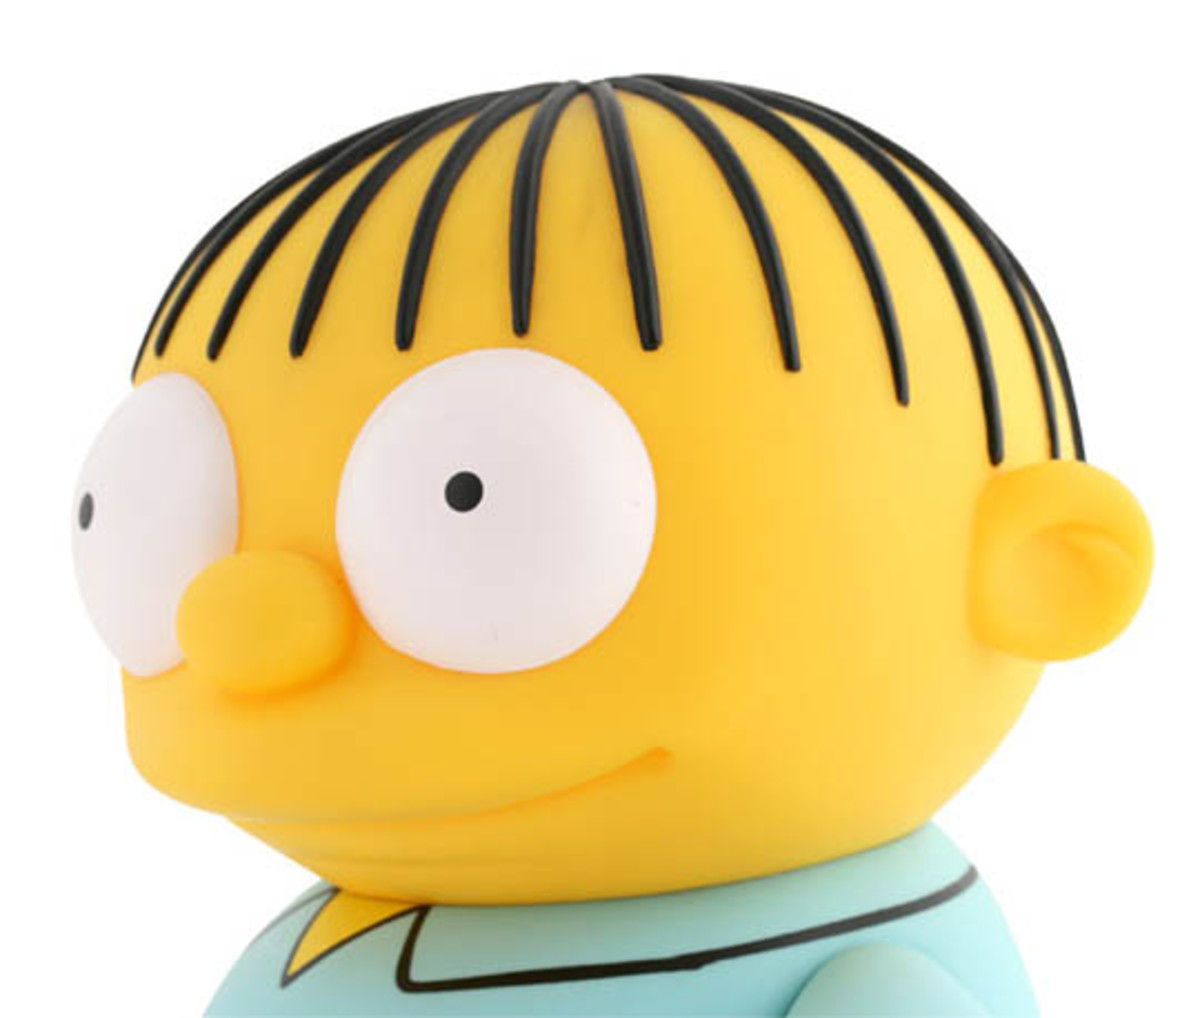 kidrobot_thesimpsons_ralph_wiggum_2